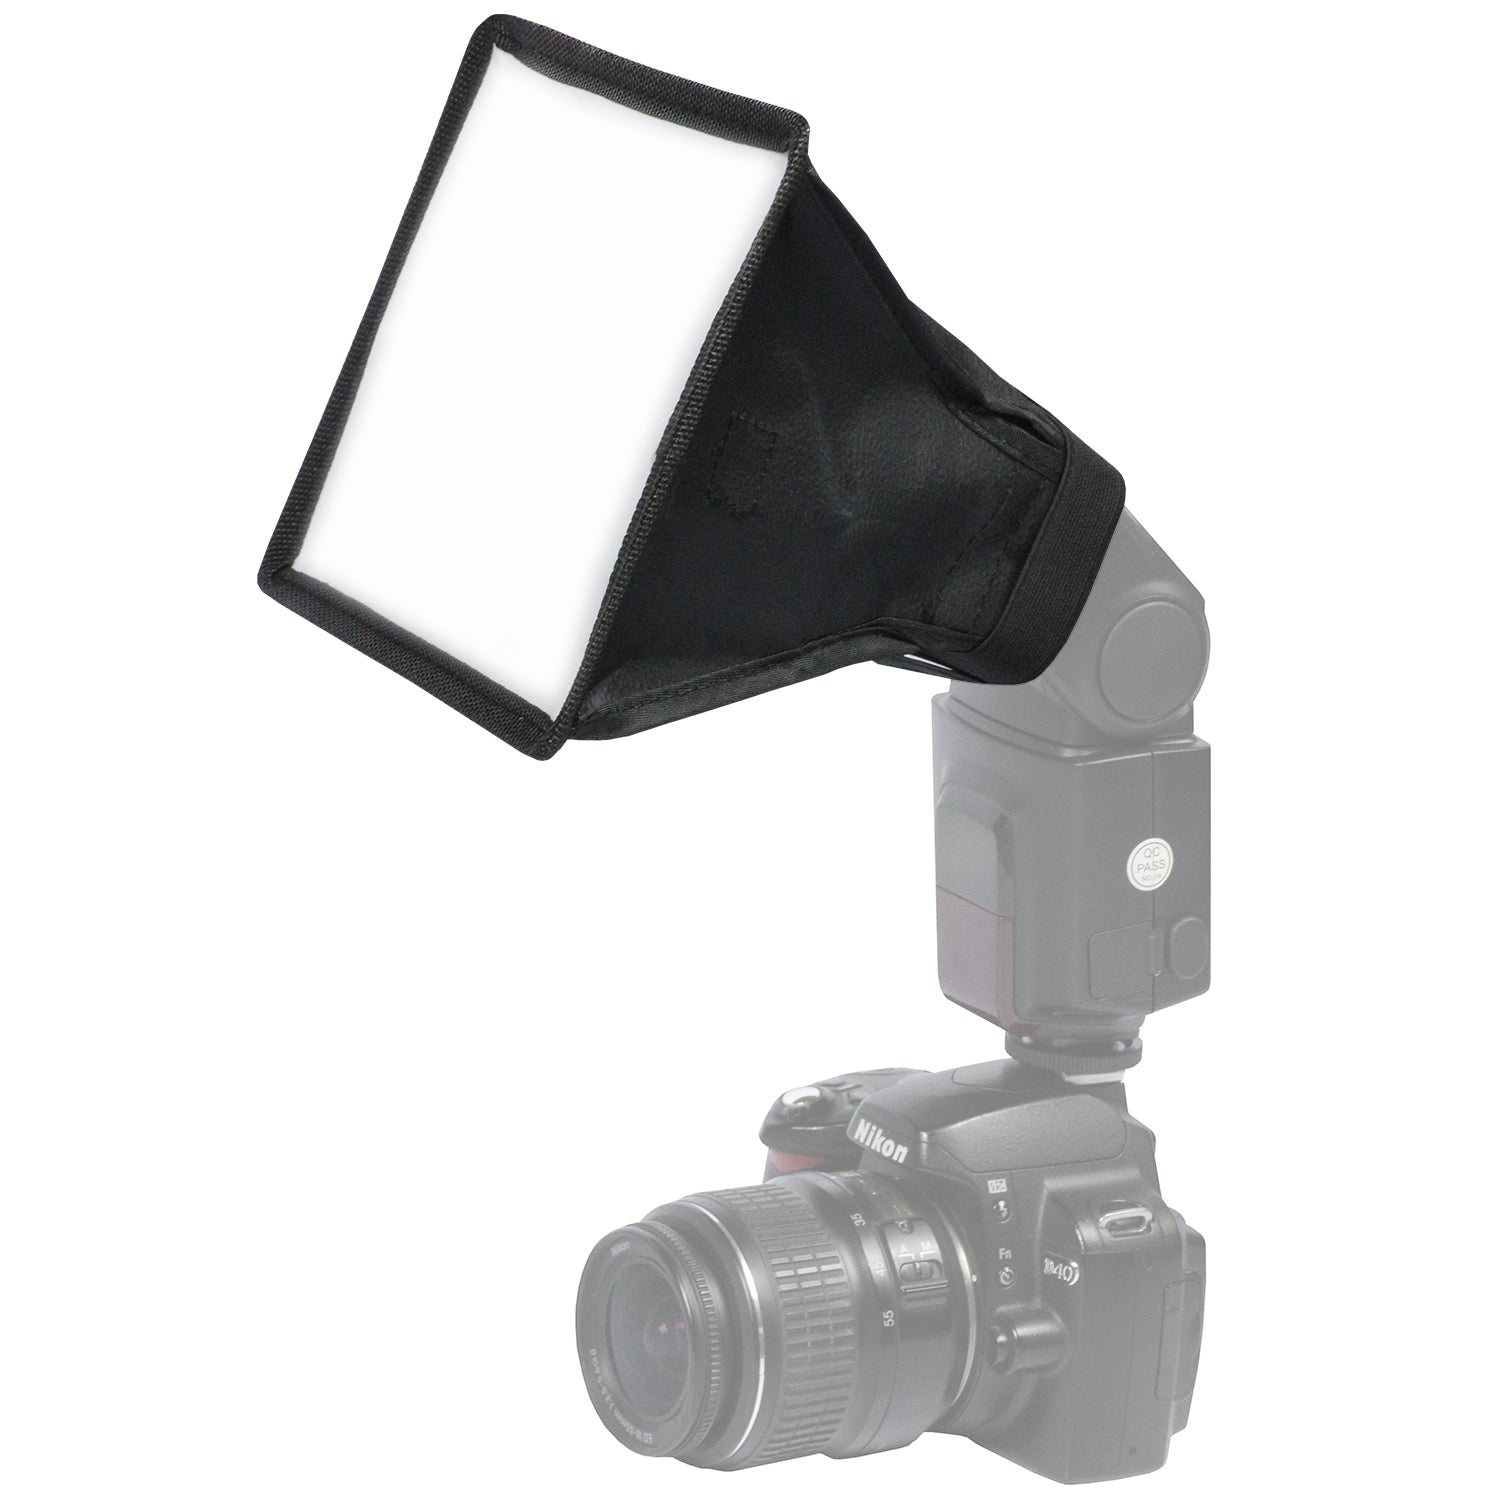 Collapsible Light Diffuser Cover, Mini Softbox for Camera Photo Video LED  Light Panel & Flash Light